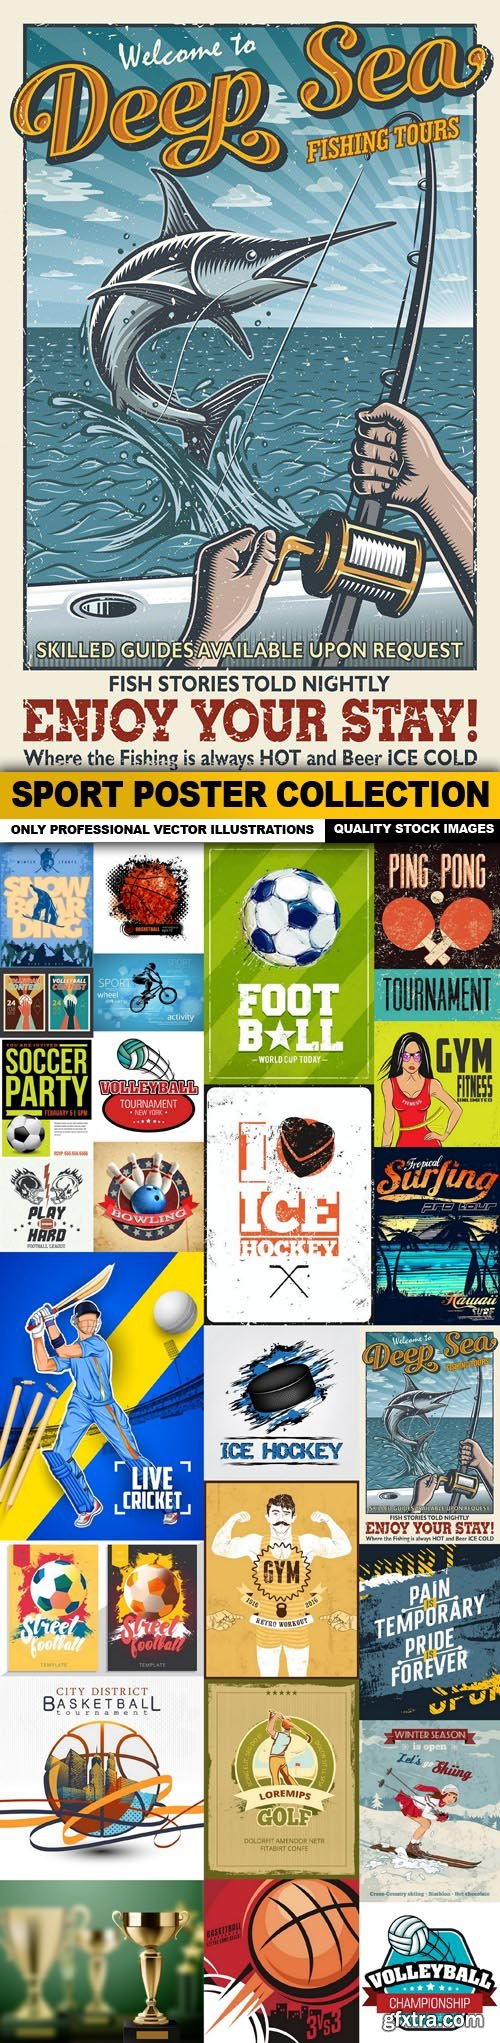 Sport Poster Collection - 25 Vector